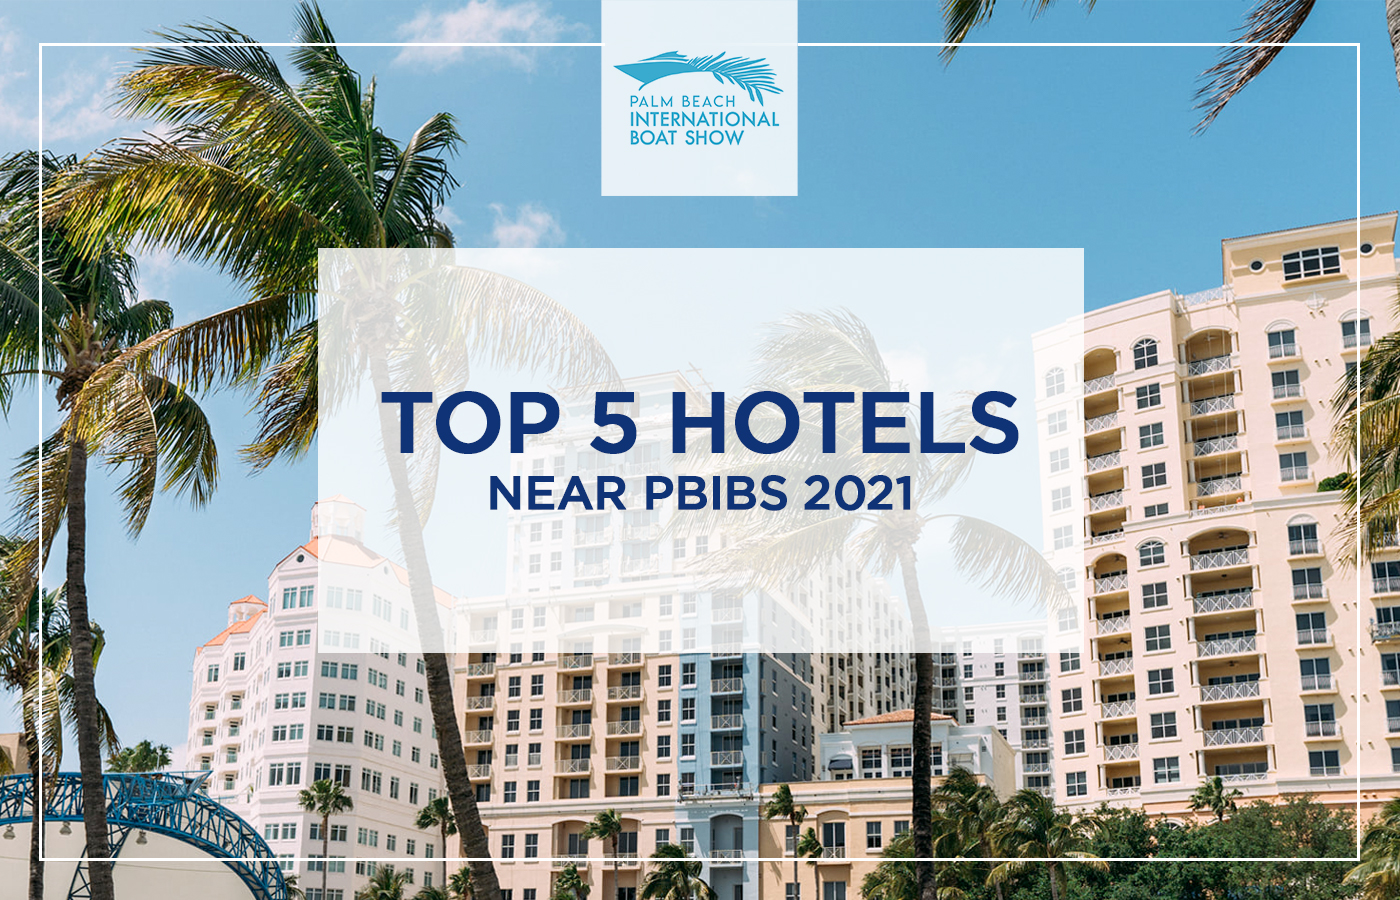 Top Hotels Within A 10 Minute Drive Of The Palm Beach Boat Show 2021